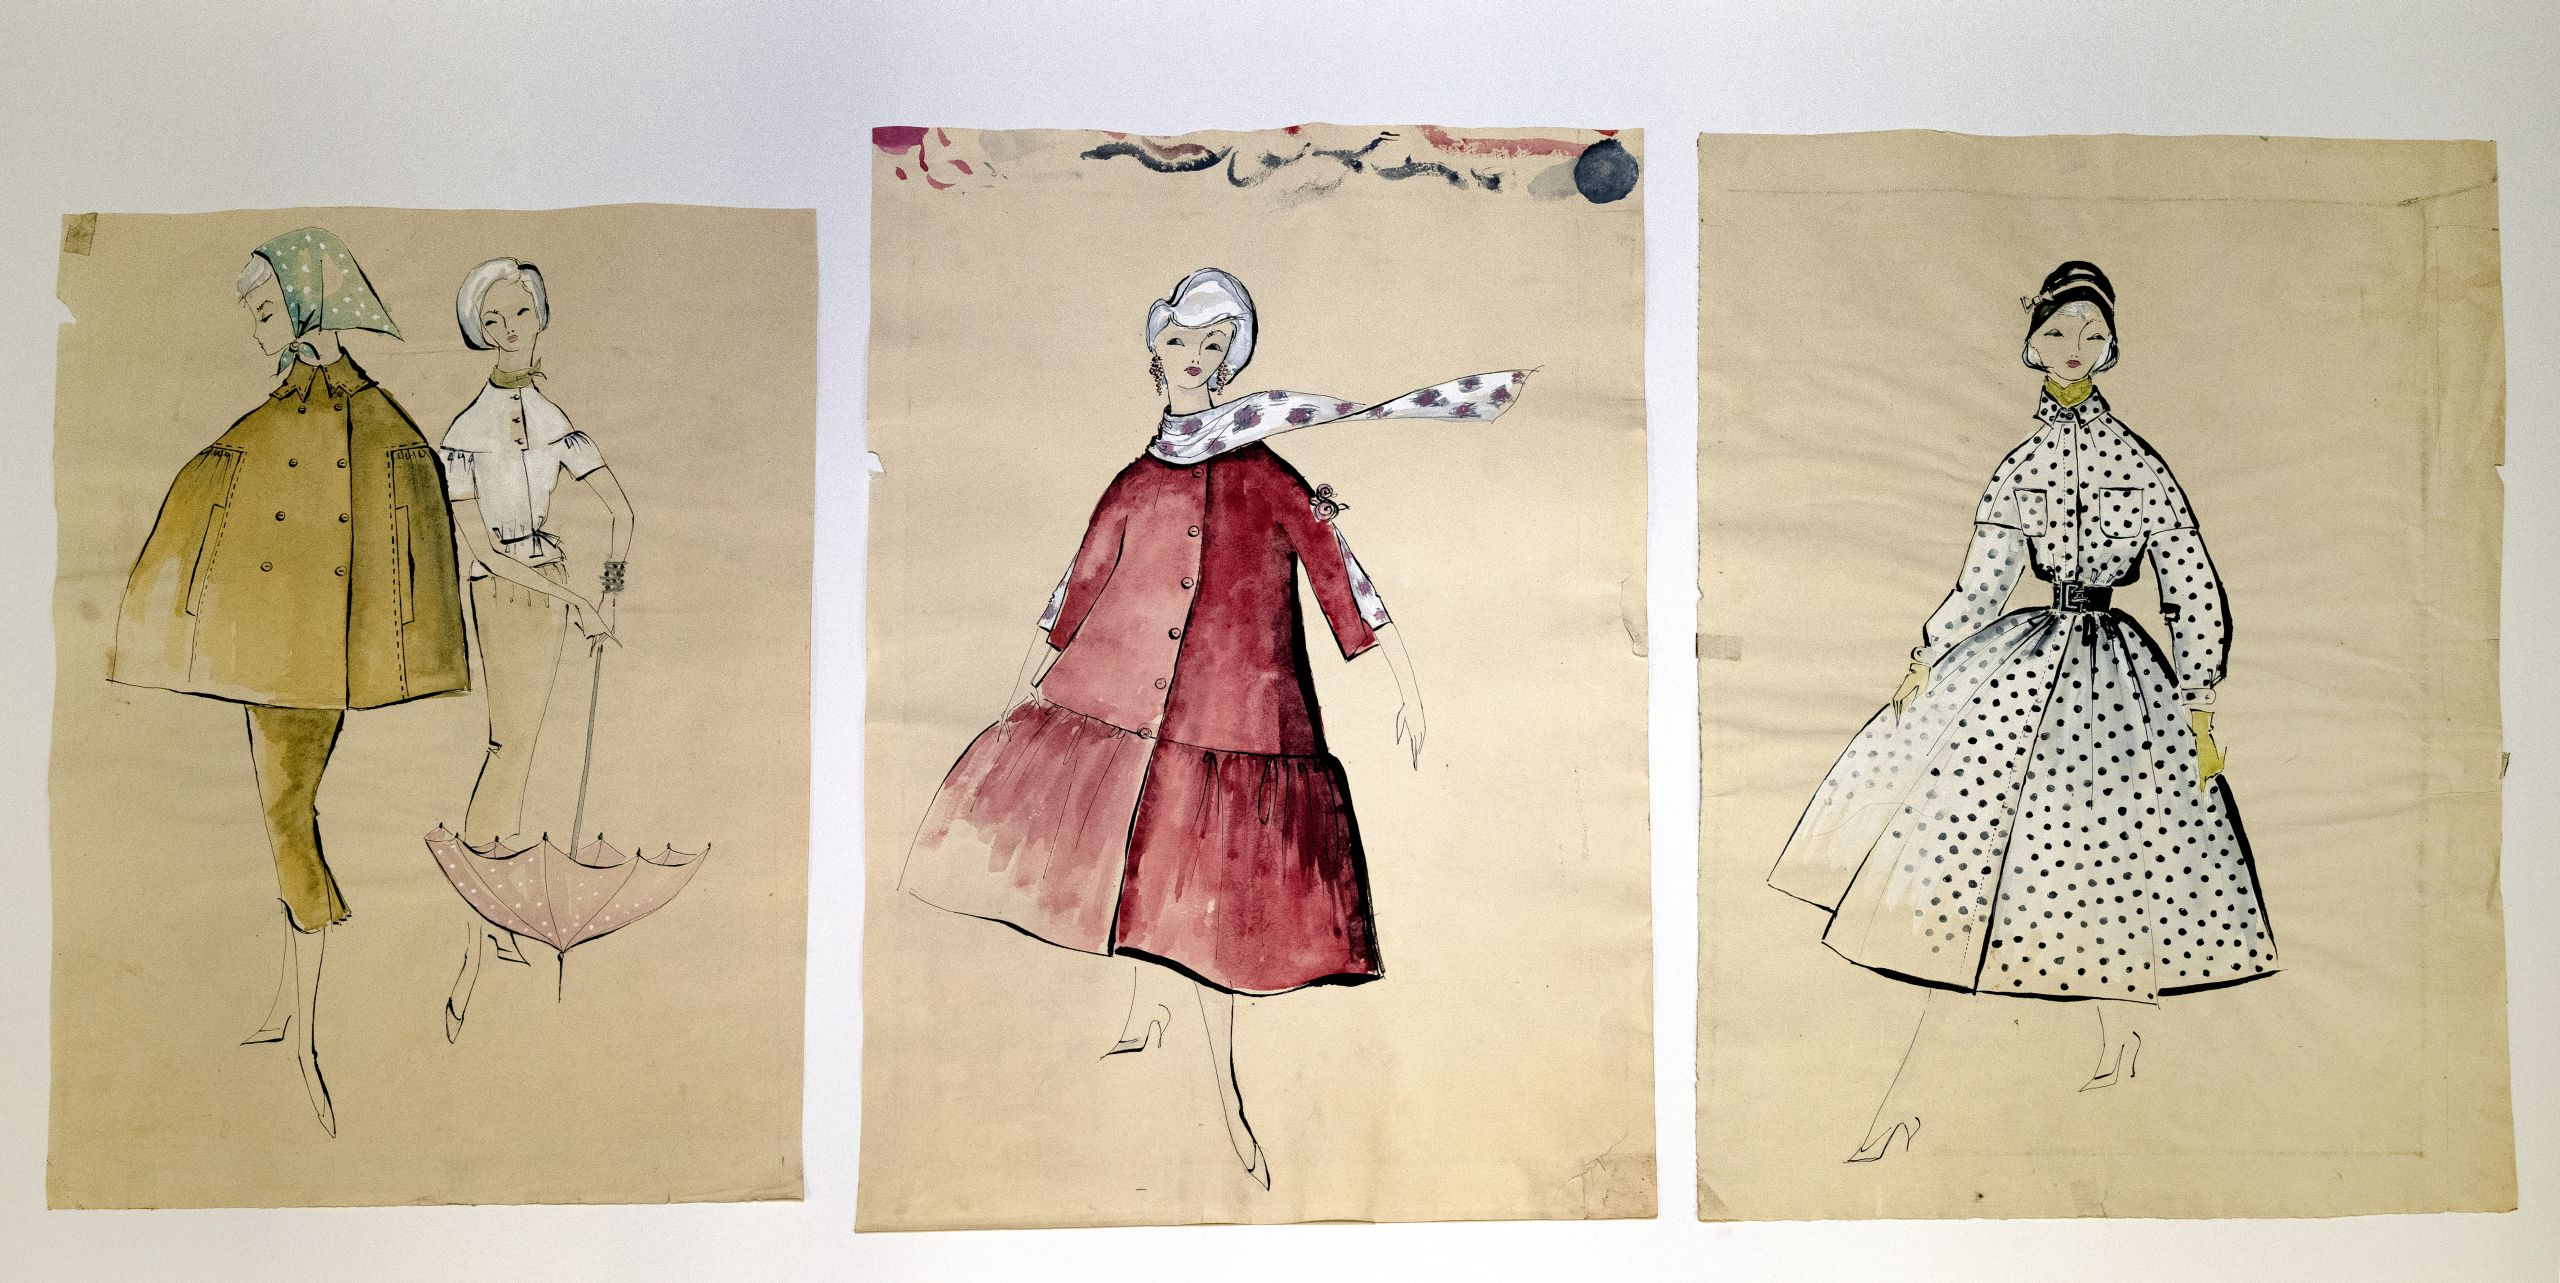 Drawings of three dresses in color